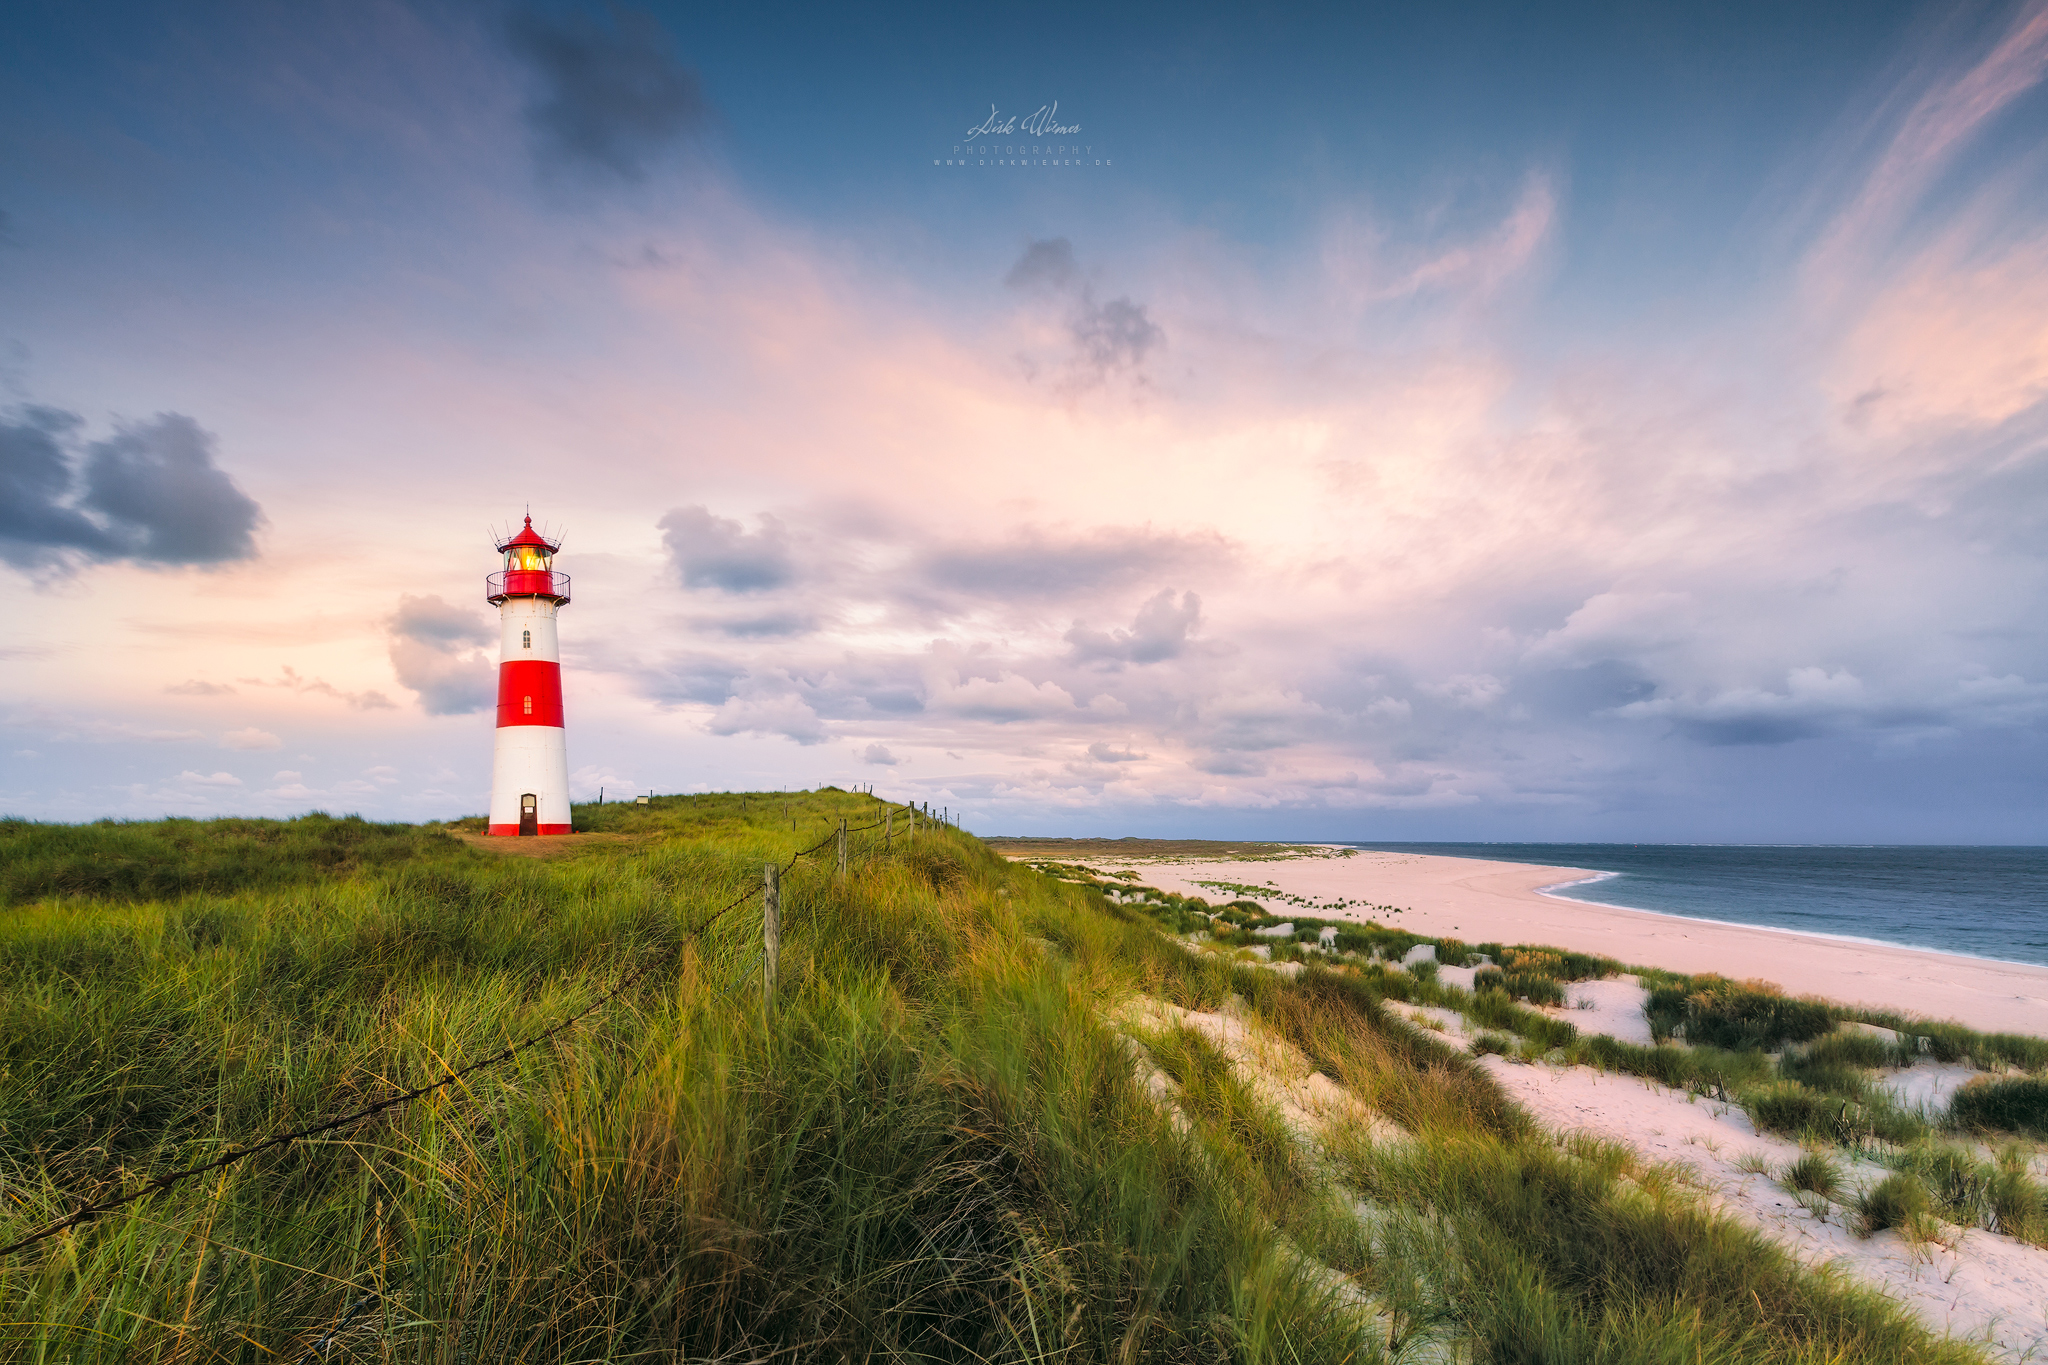 Lighthouse in the morning light (Ellenbogen / Sylt), Germany